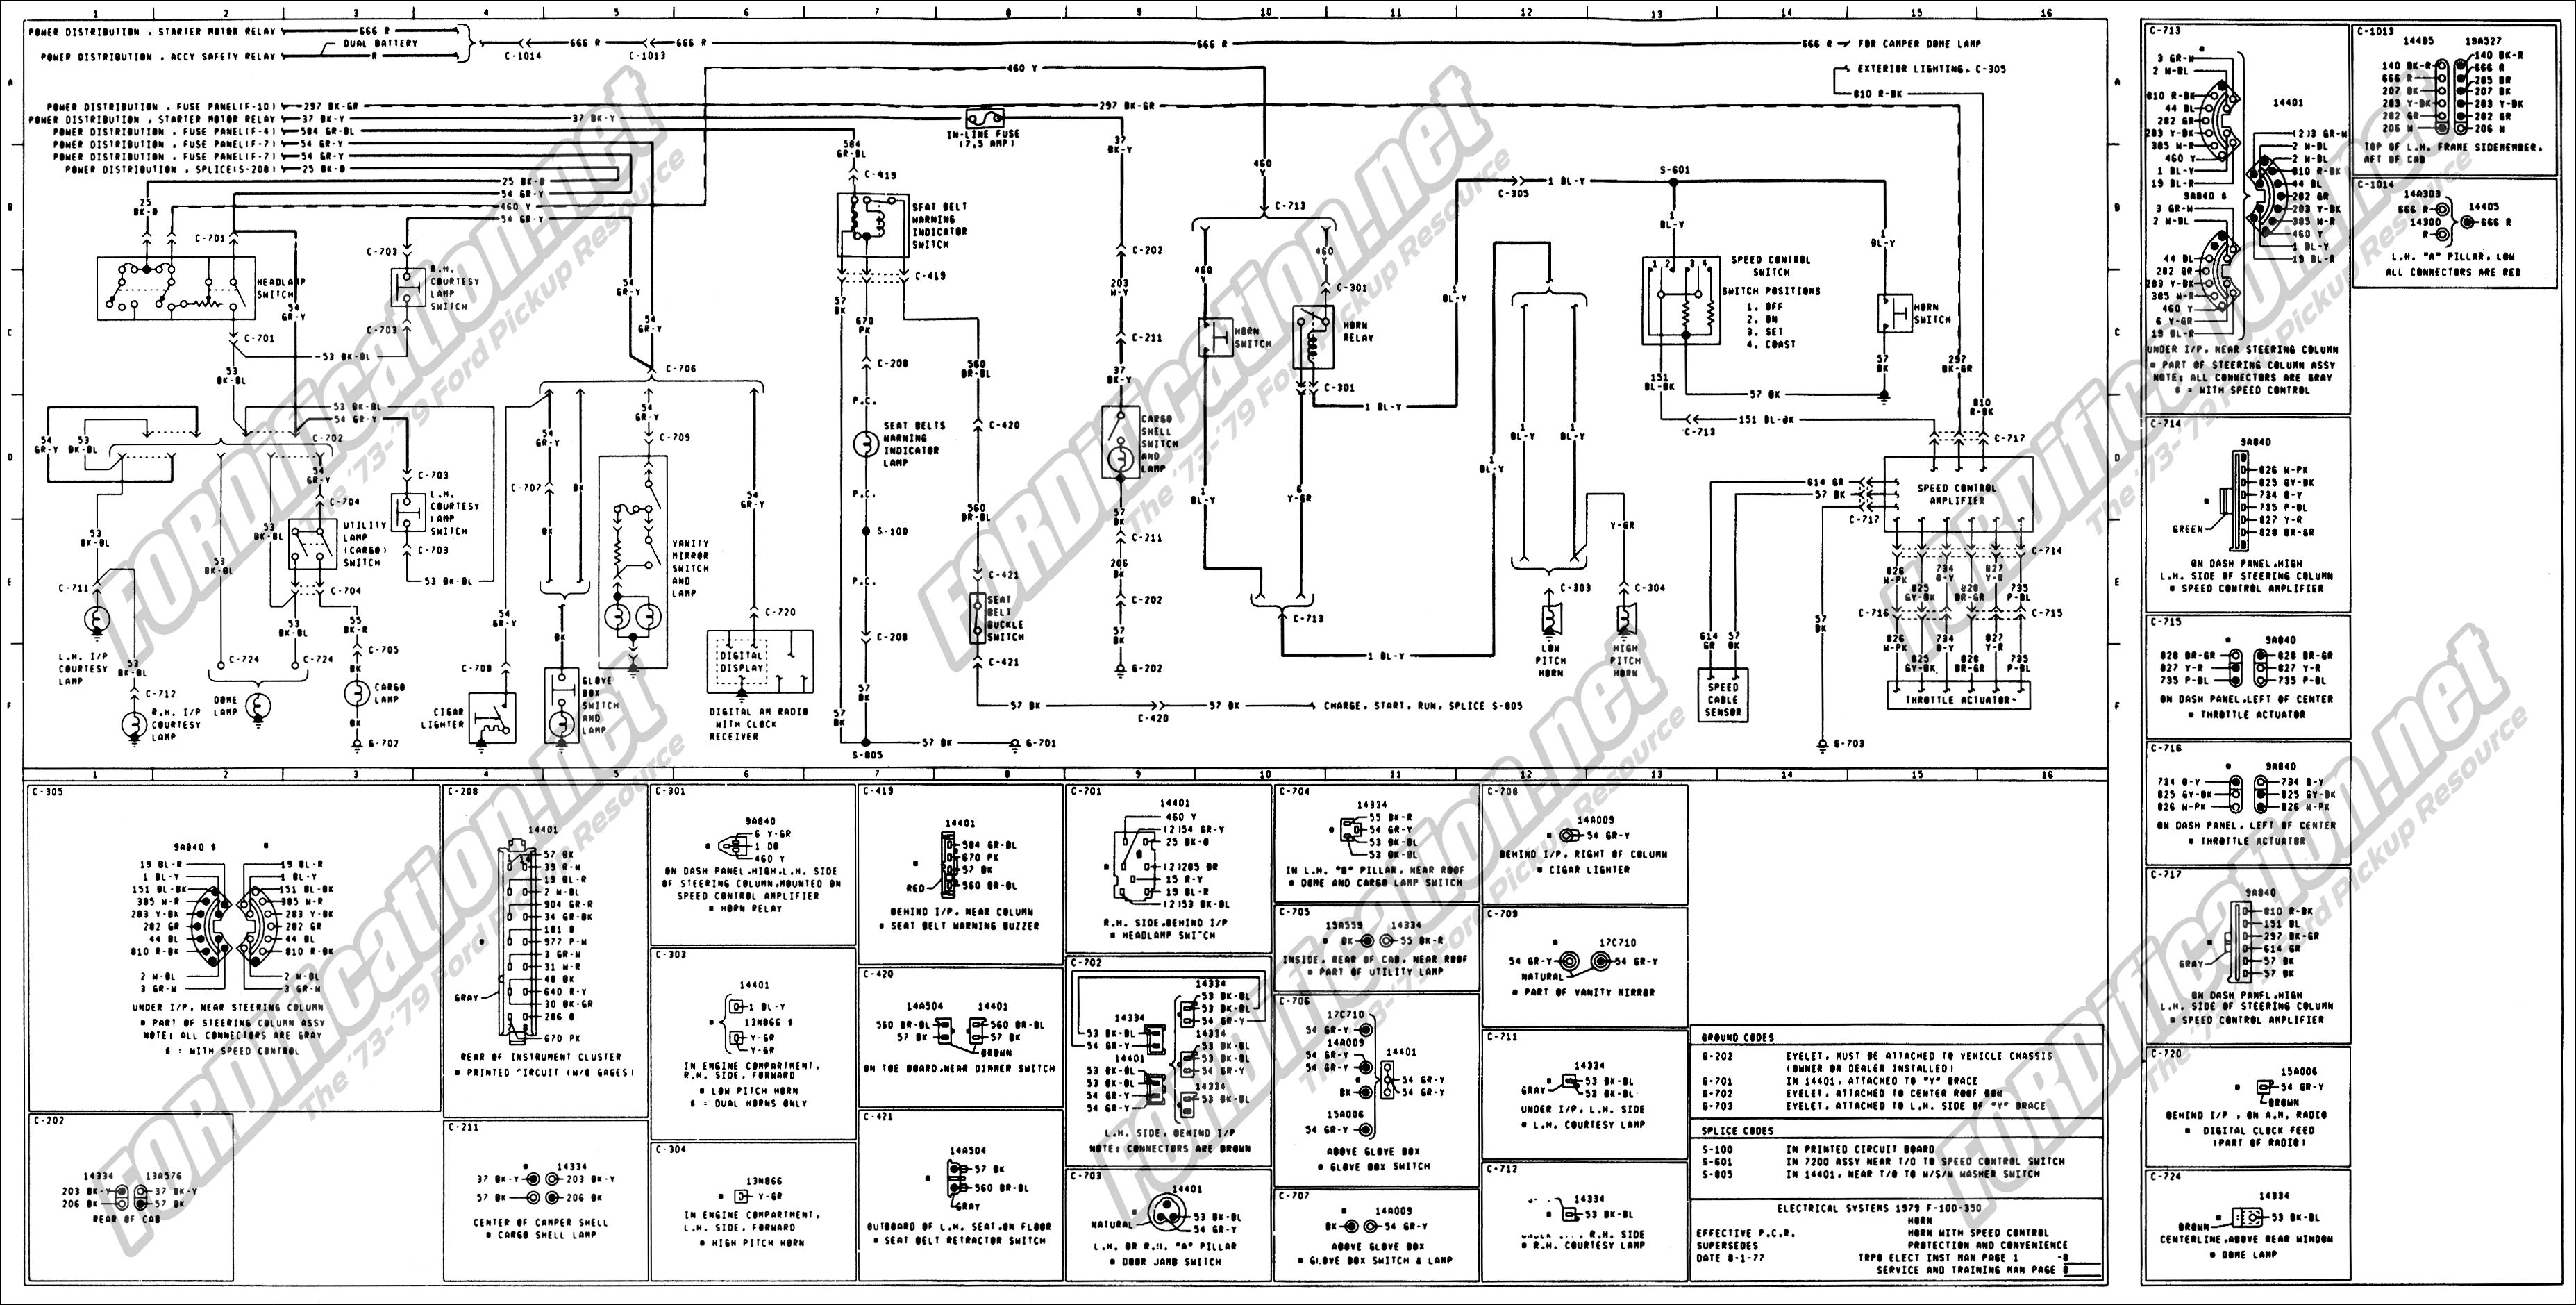 wiring_79master_8of9 1976 ford f150 wiring diagram 1979 ford truck wiring harness fordification wiring diagram at virtualis.co